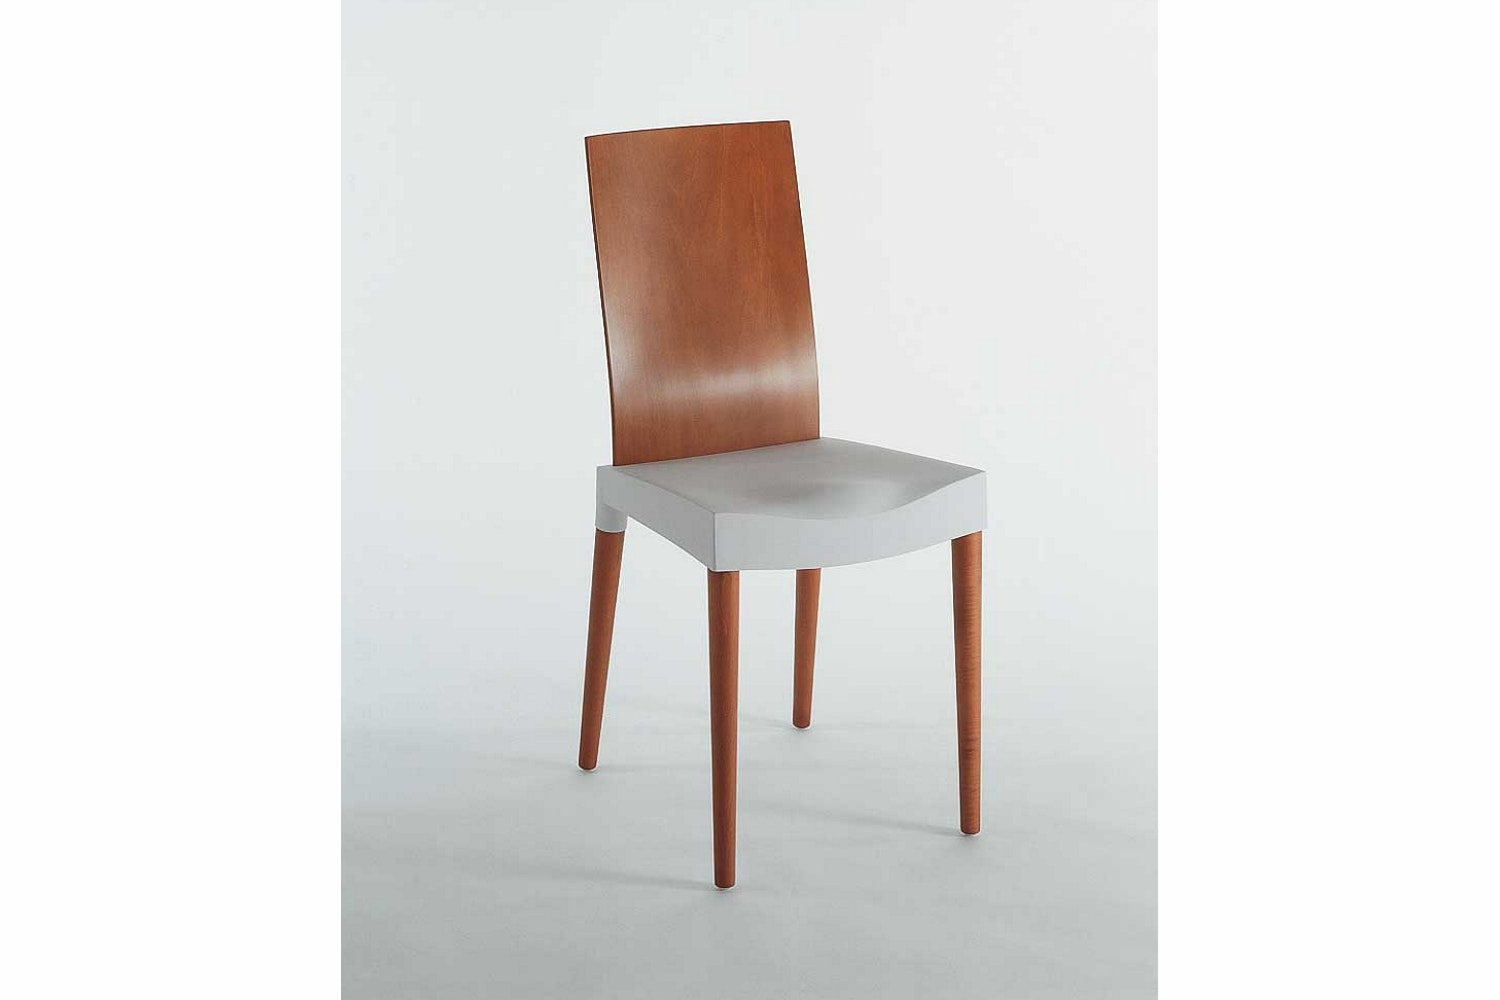 Miss Trip Chair by Philippe Starck for Kartell